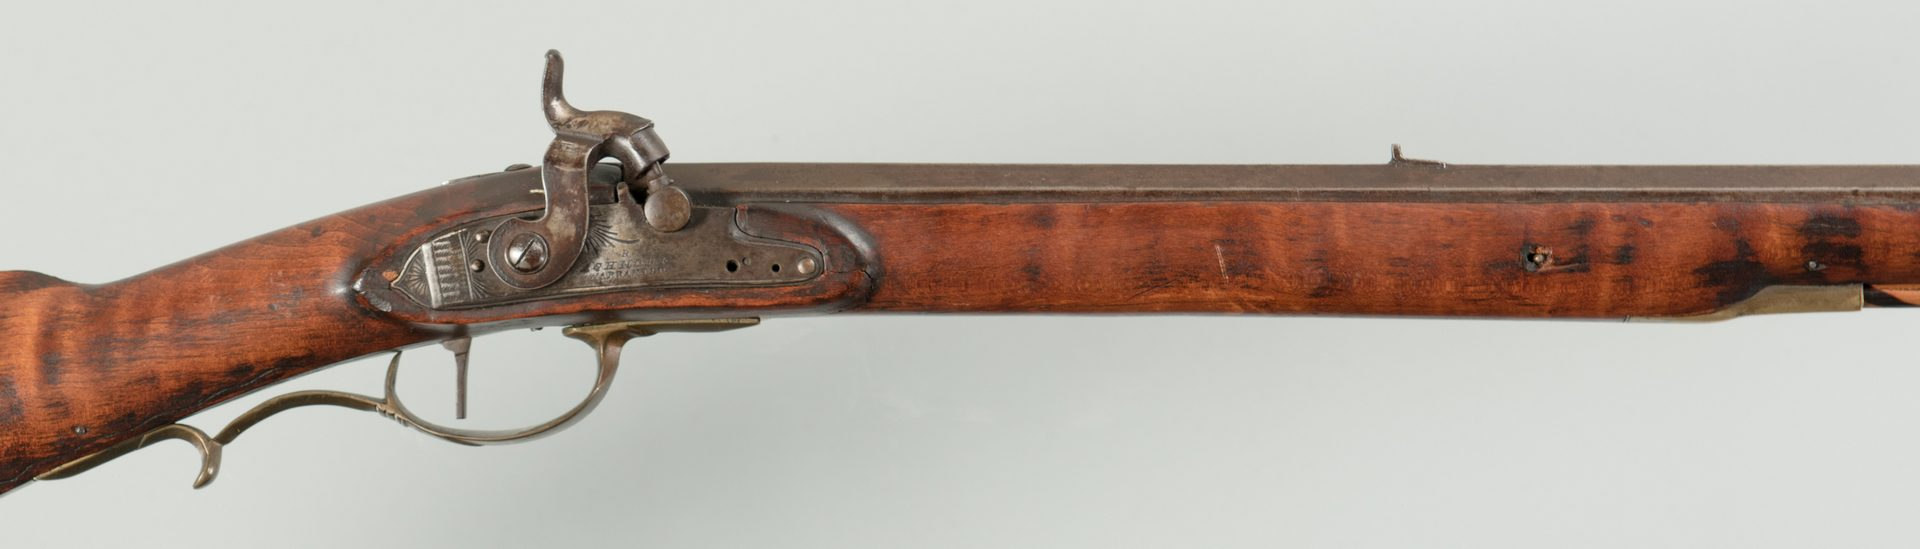 Lot 243: Full Stock Long Rifle, approx. .45 Cal.